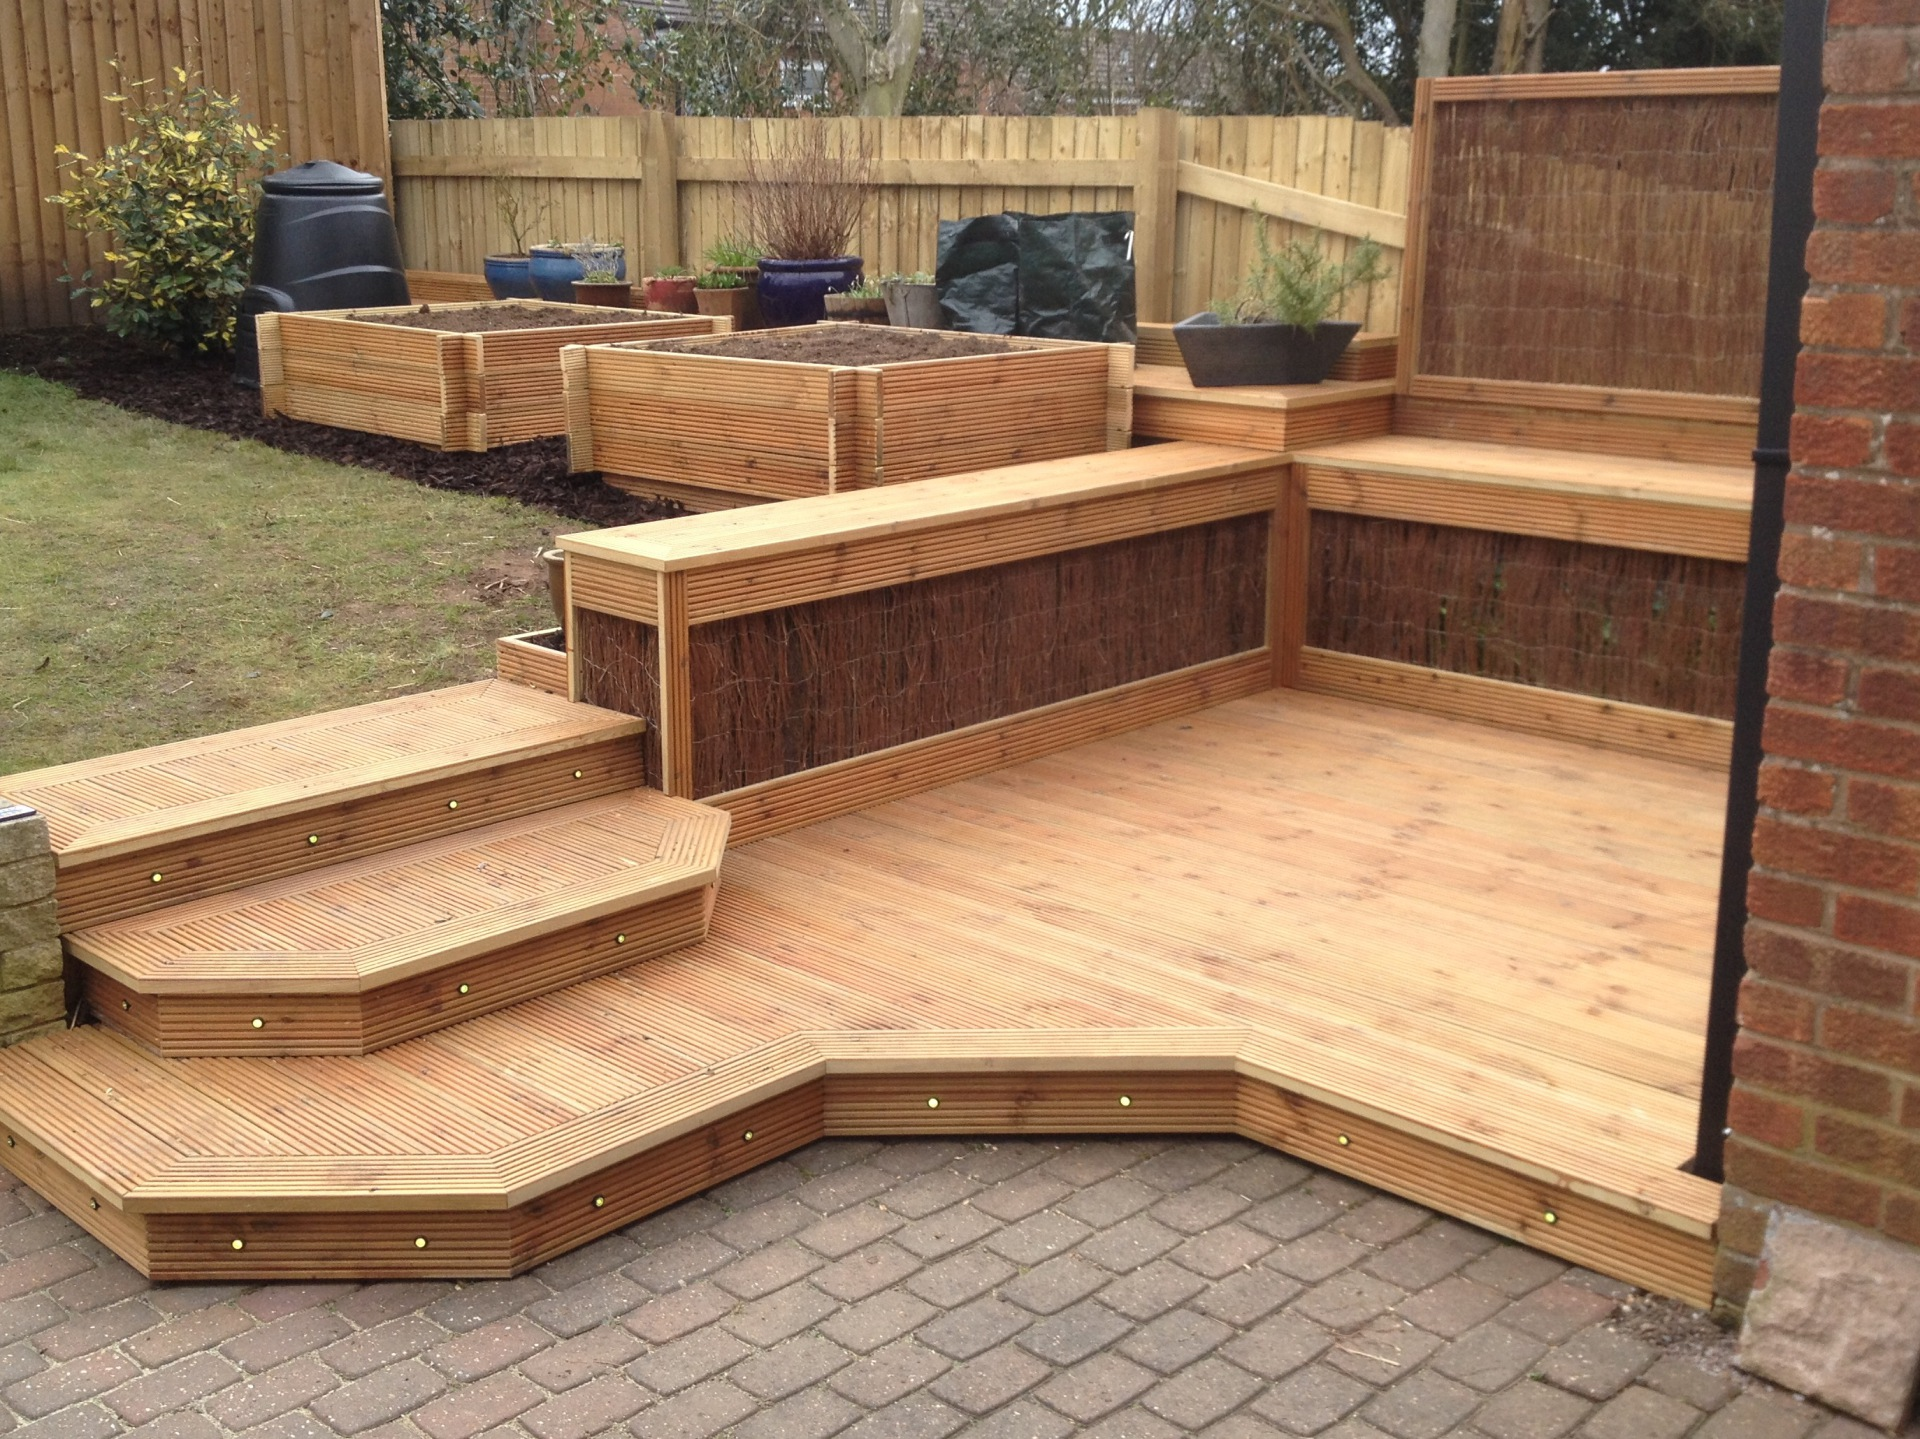 Bespoke decking installation Stratford-upon-Avon